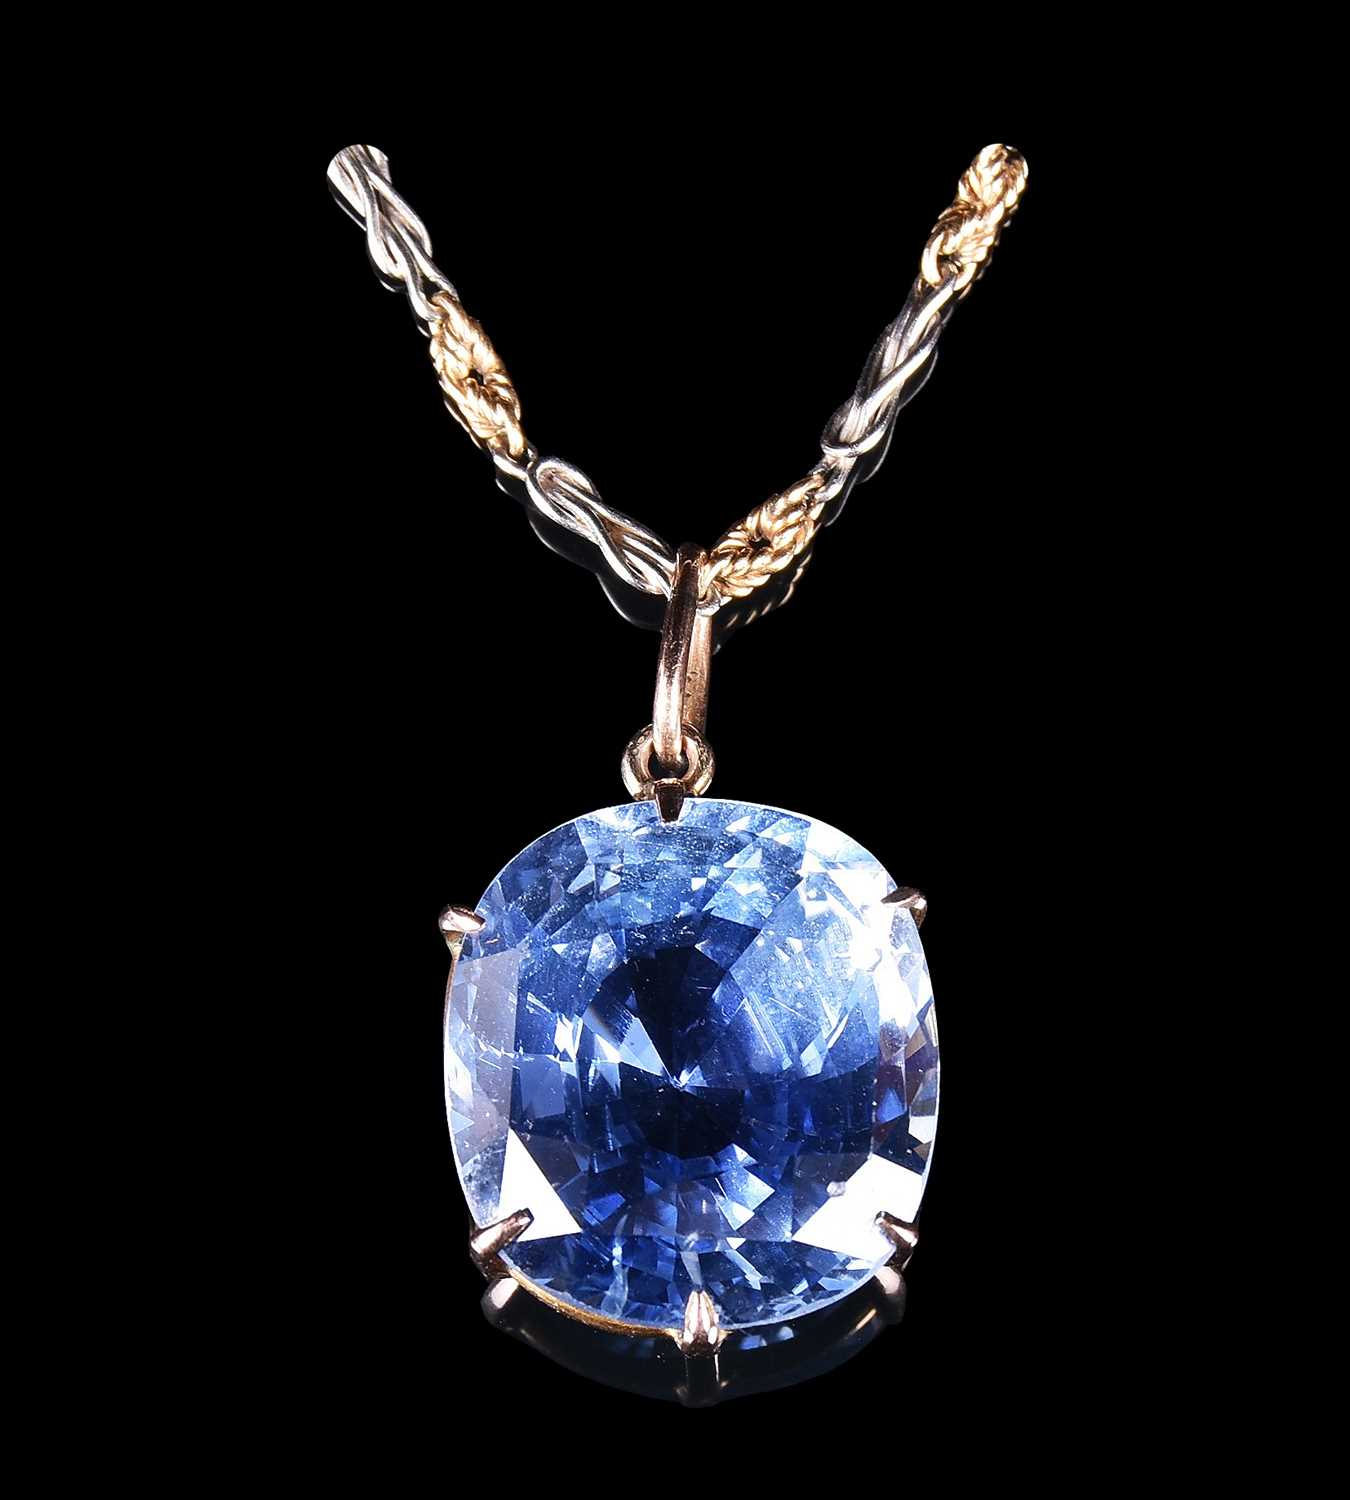 Lot 446-A large and impressive 30 carat sapphire pendant...